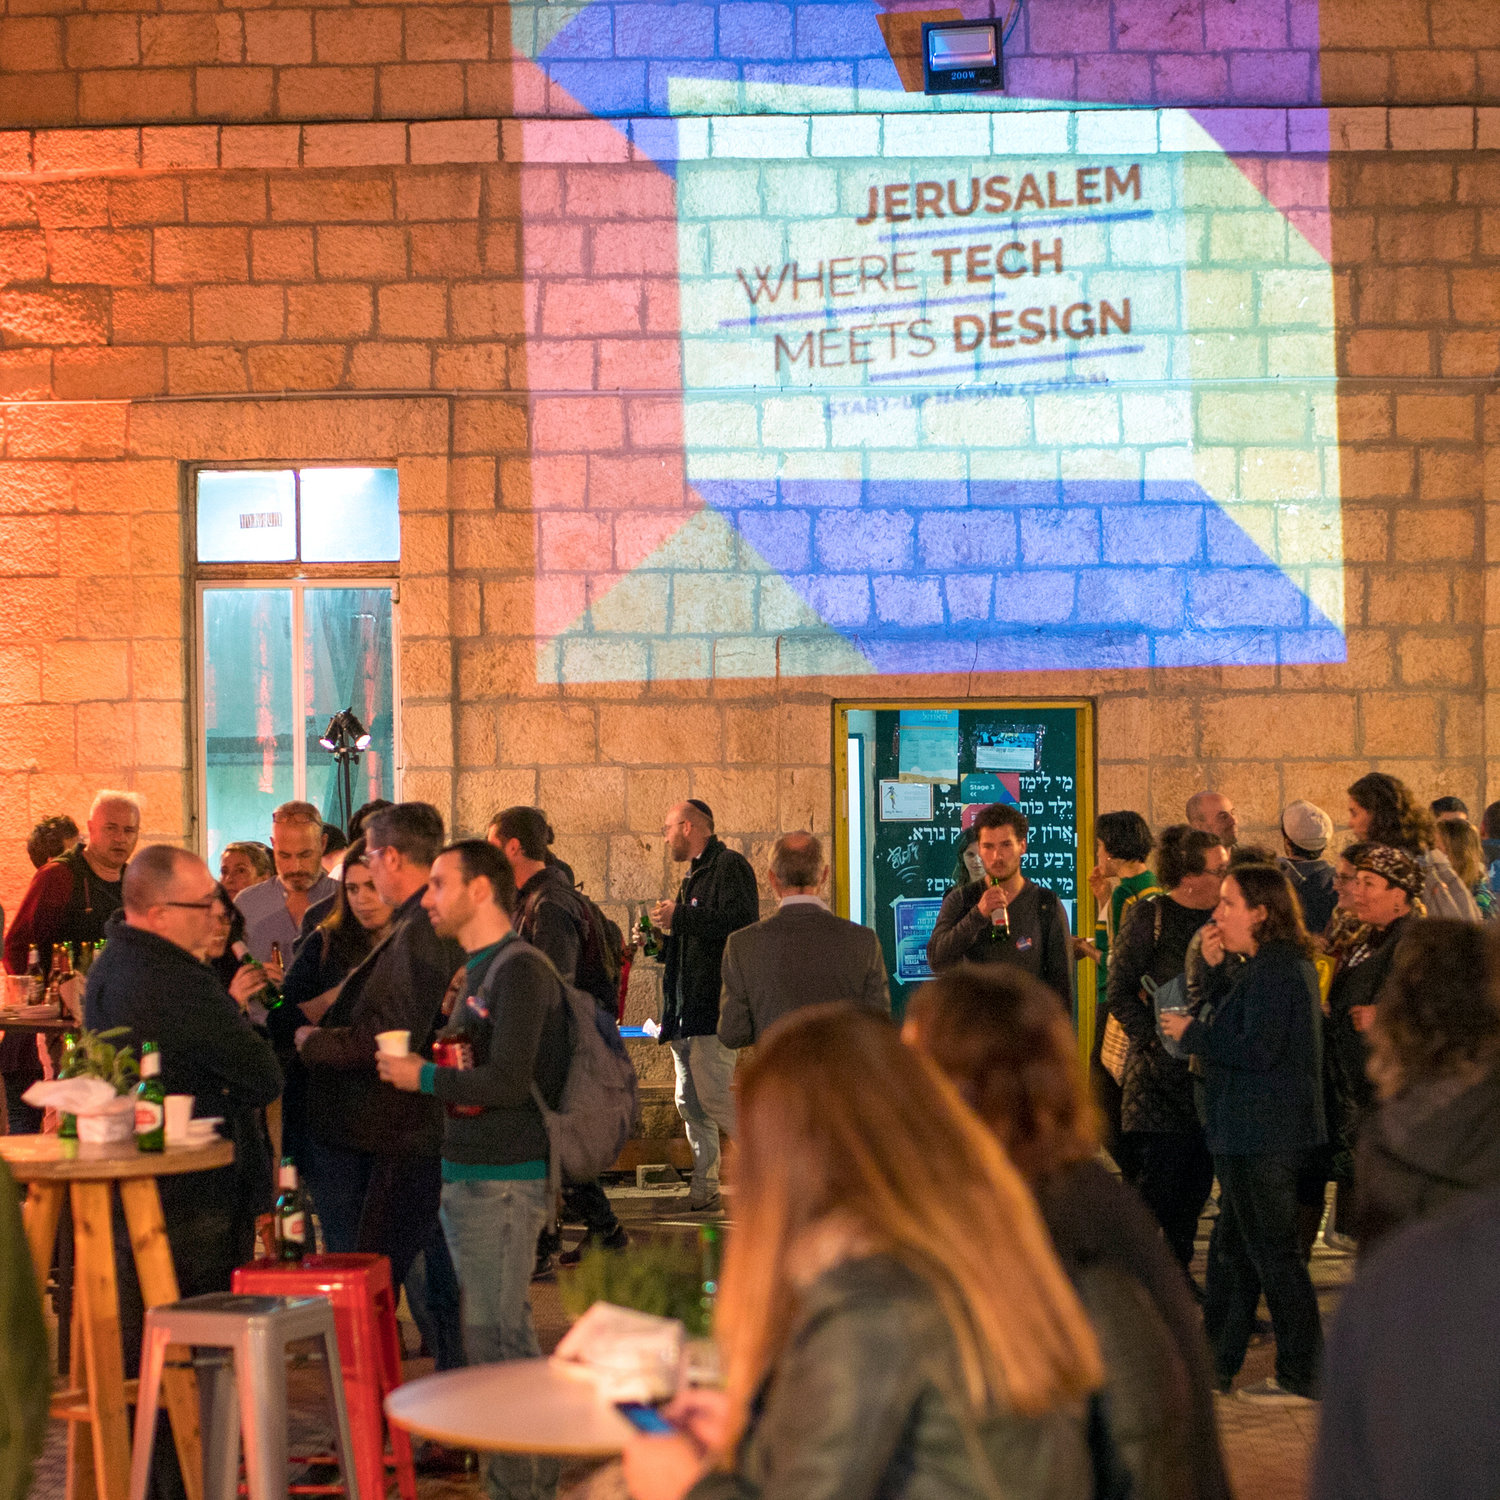 An event organized in Jerusalem by Start-Up Nation Central.